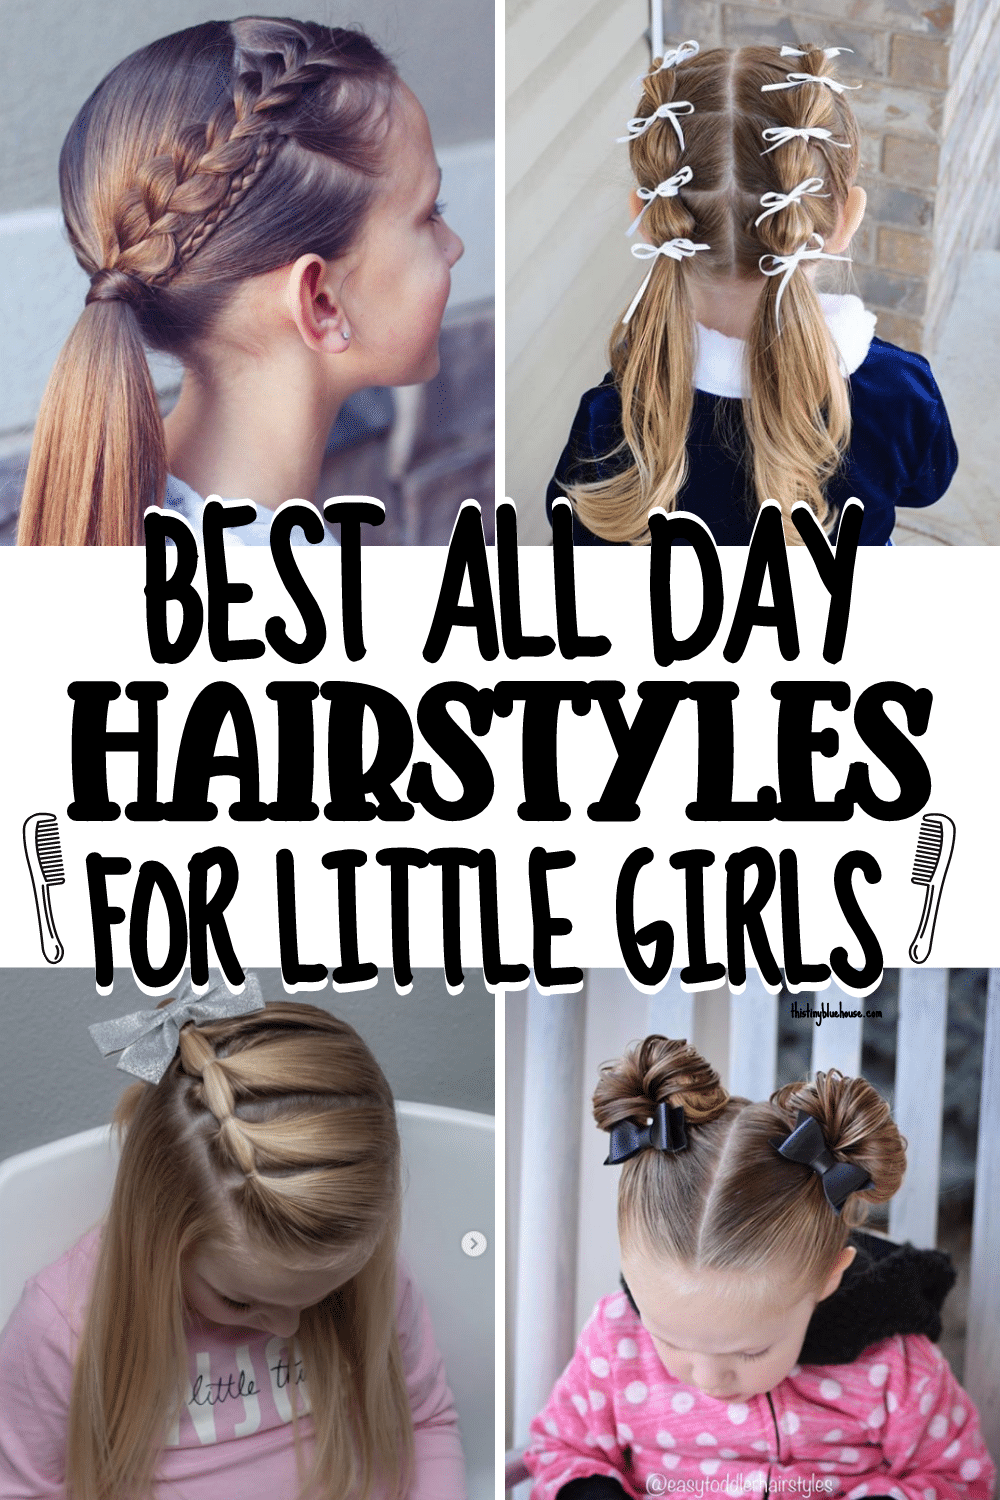 Cute & Easy Hairstyle For Girls that last ALL DAY